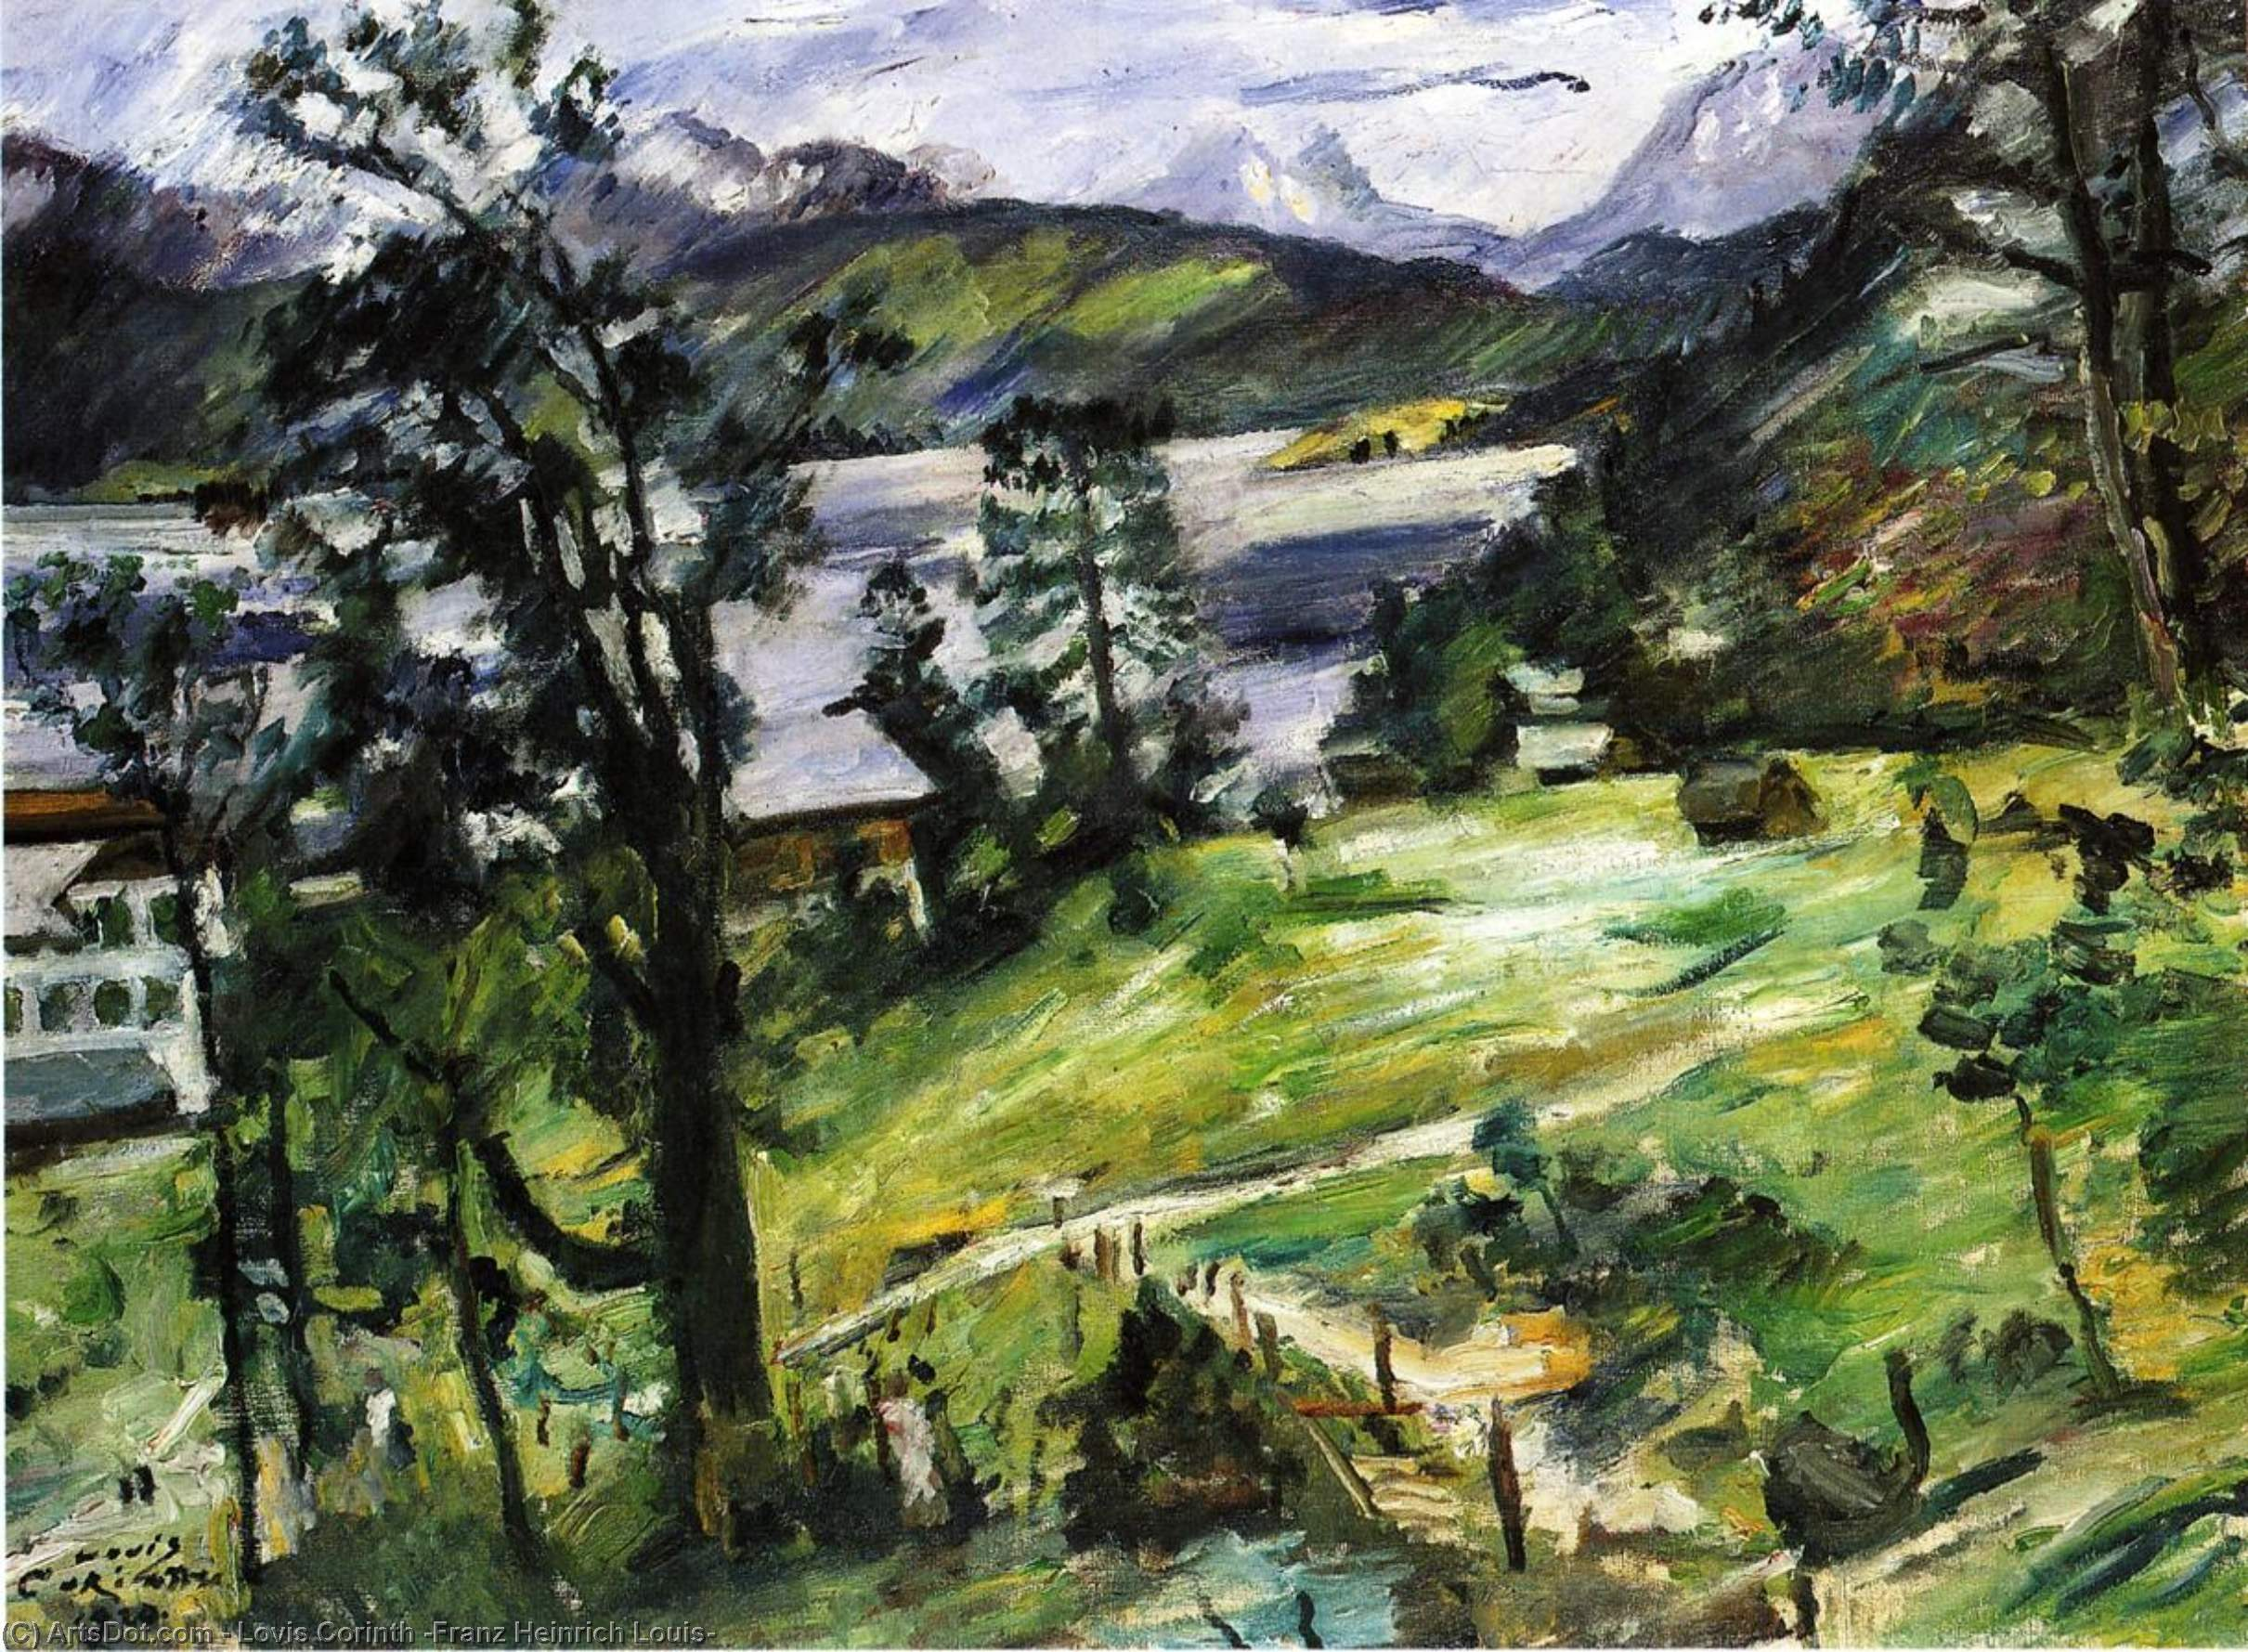 Walchensee Landscape with a Larch, Oil On Canvas by Lovis Corinth (Franz Heinrich Louis) (1858-1925, Netherlands)